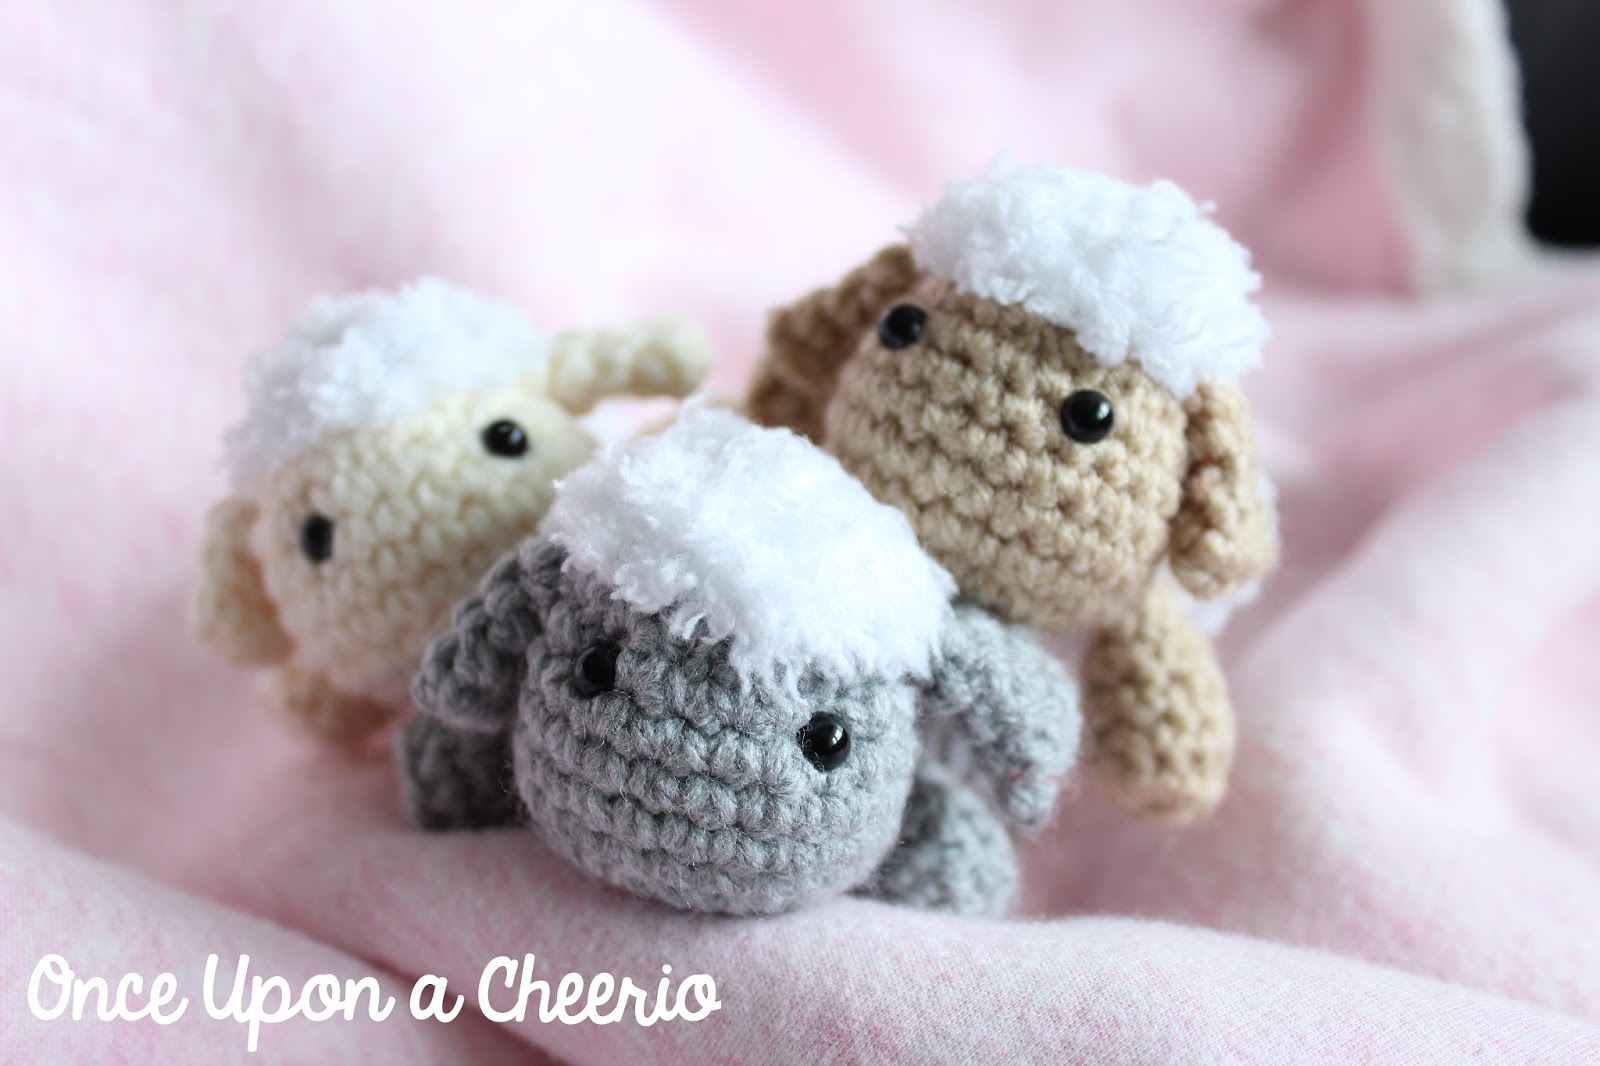 Rosemary The Lamb Crochet Pattern Once Upon A Cheerio